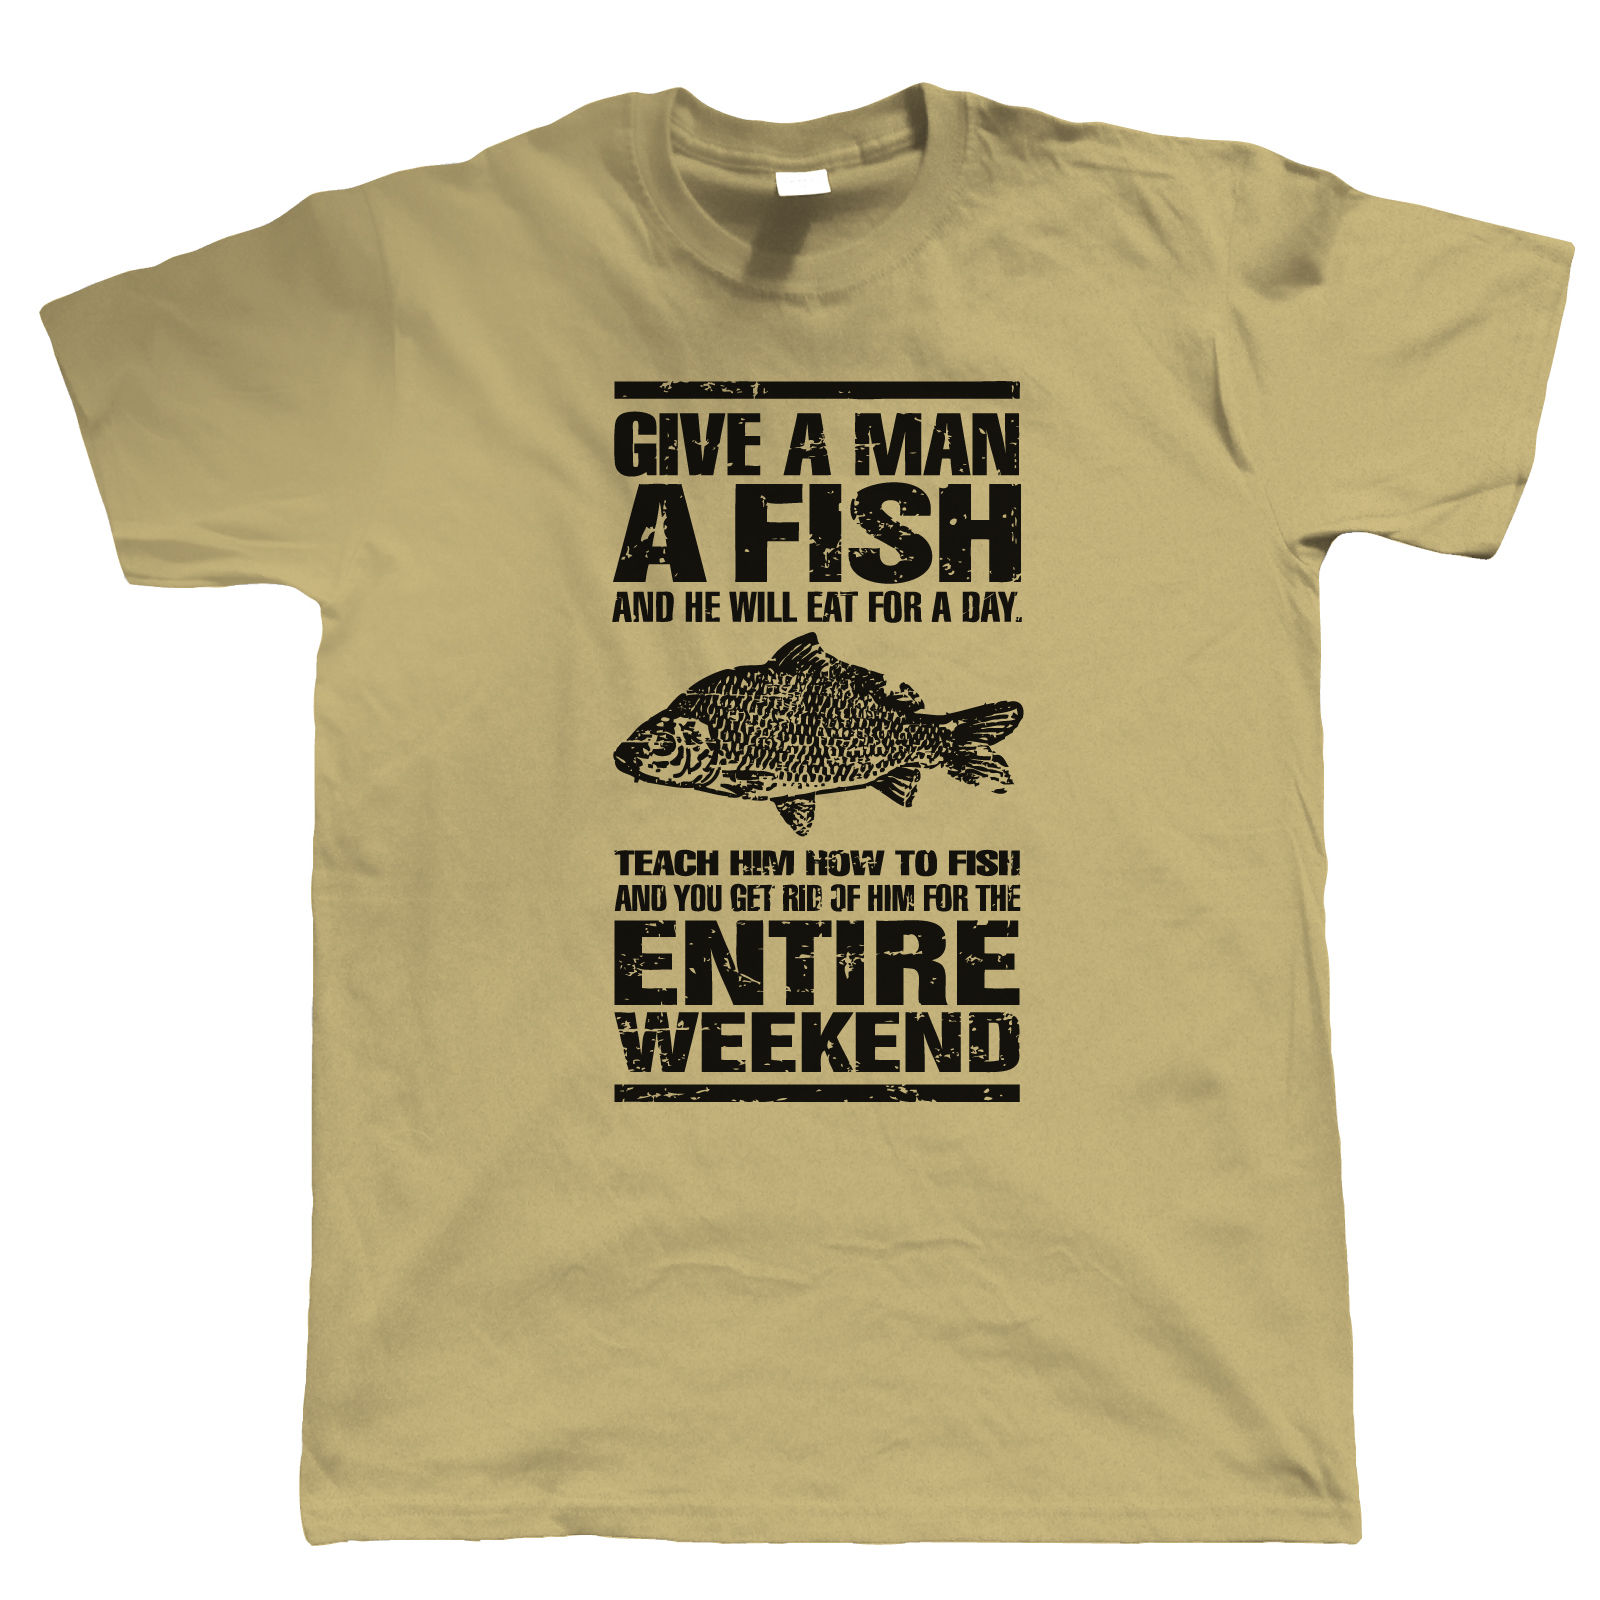 Give a man a fish funny carp fishing t shirt angling for Funny fishing t shirts